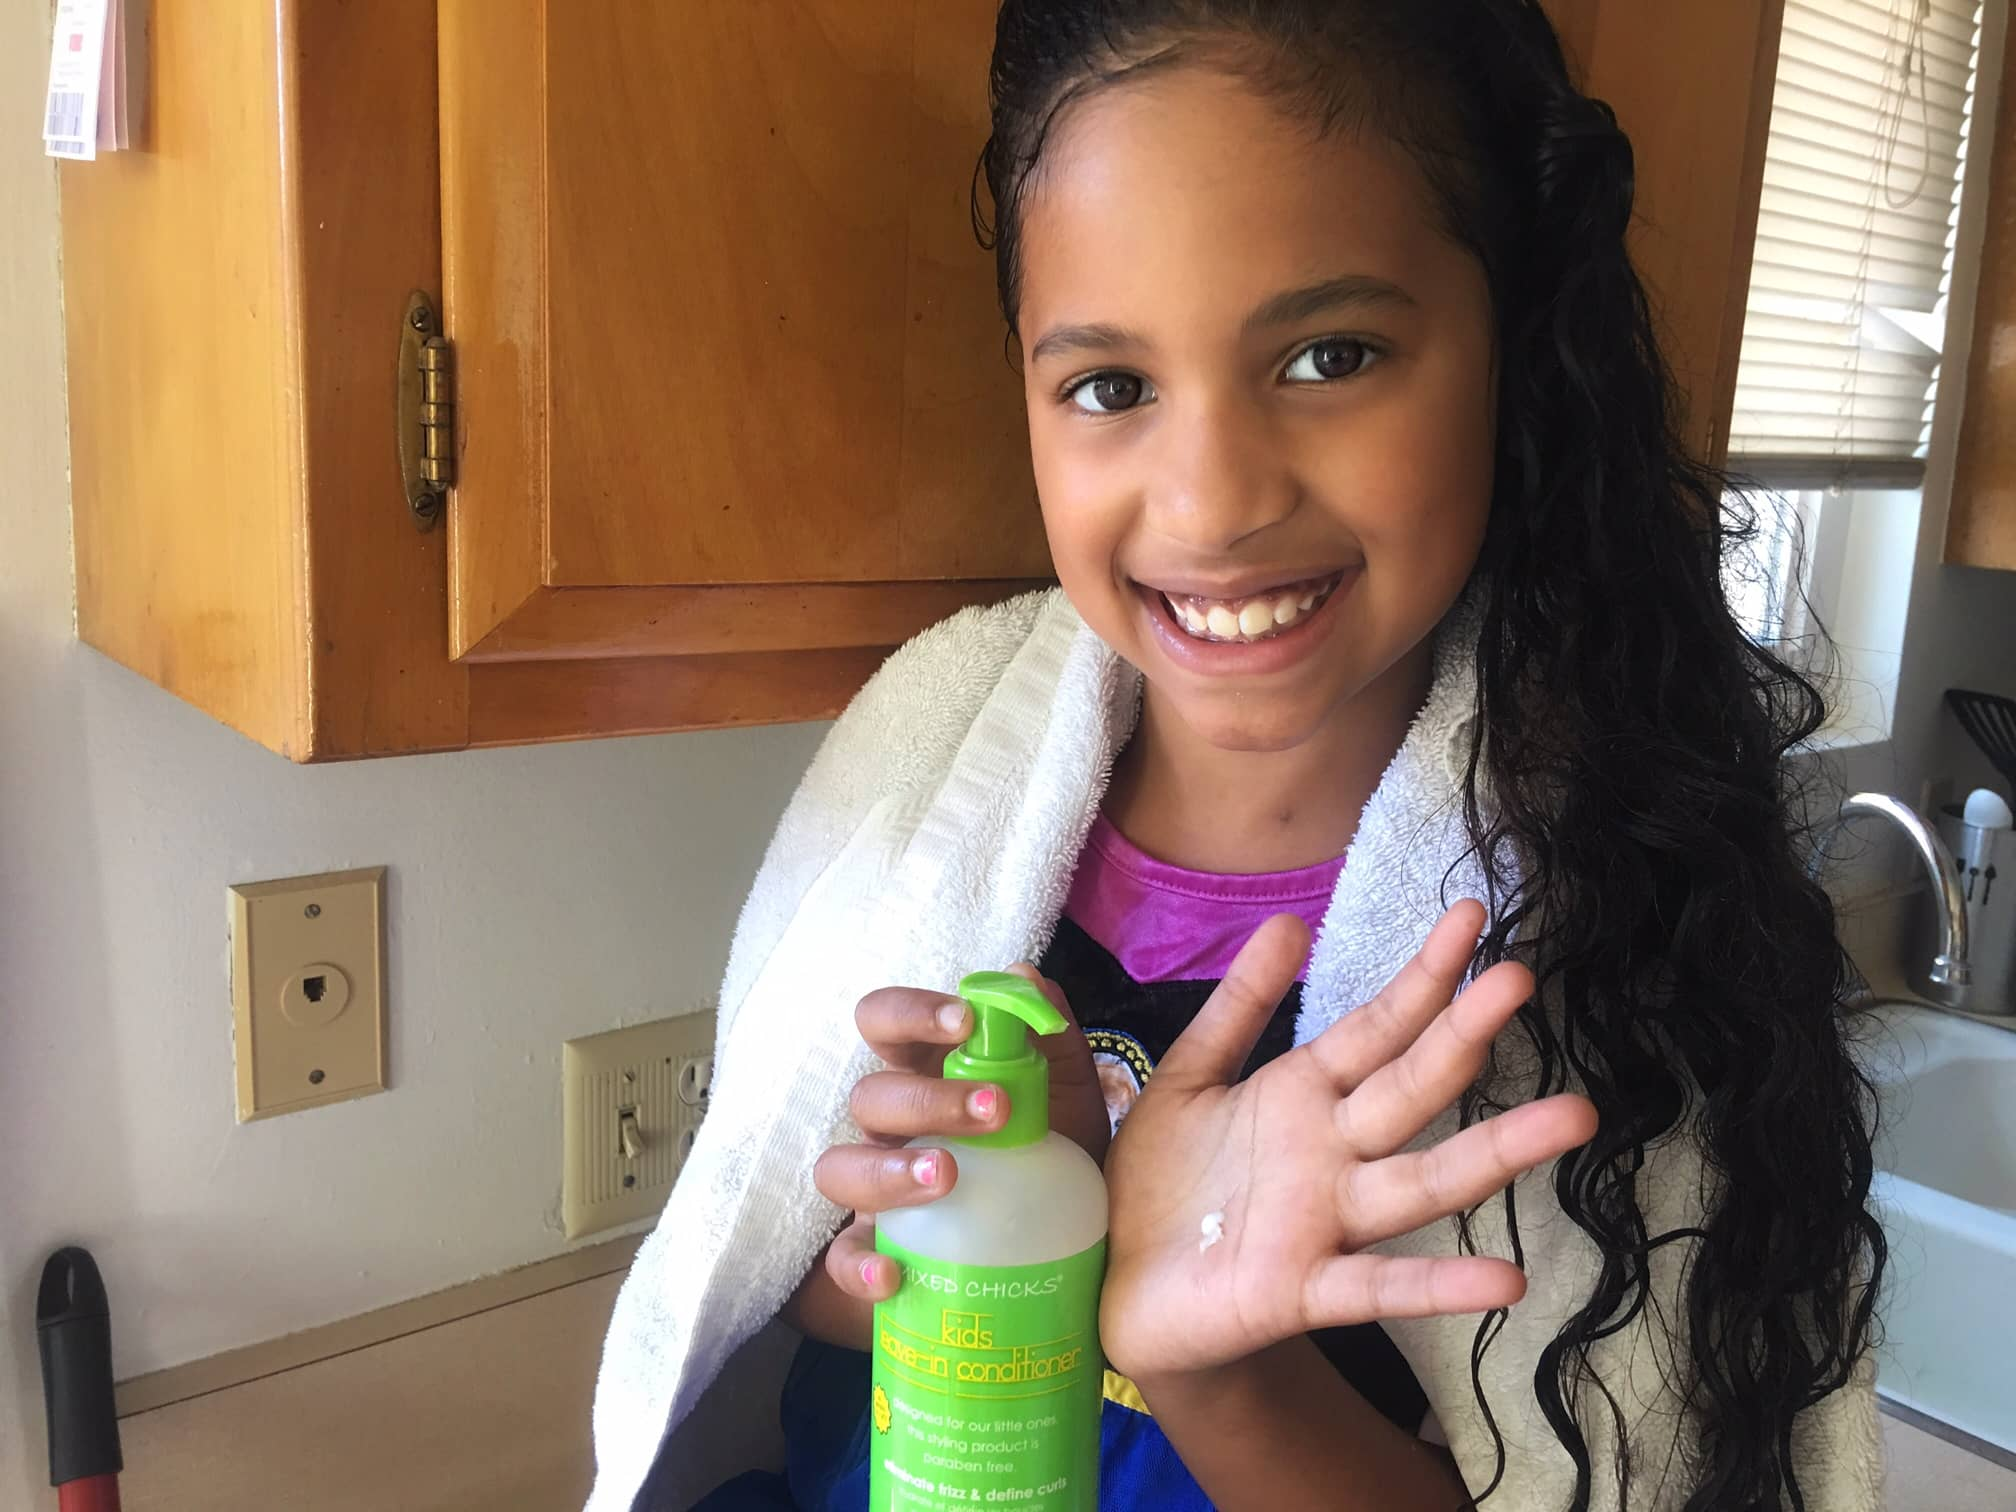 Mixed Chicks Products Review